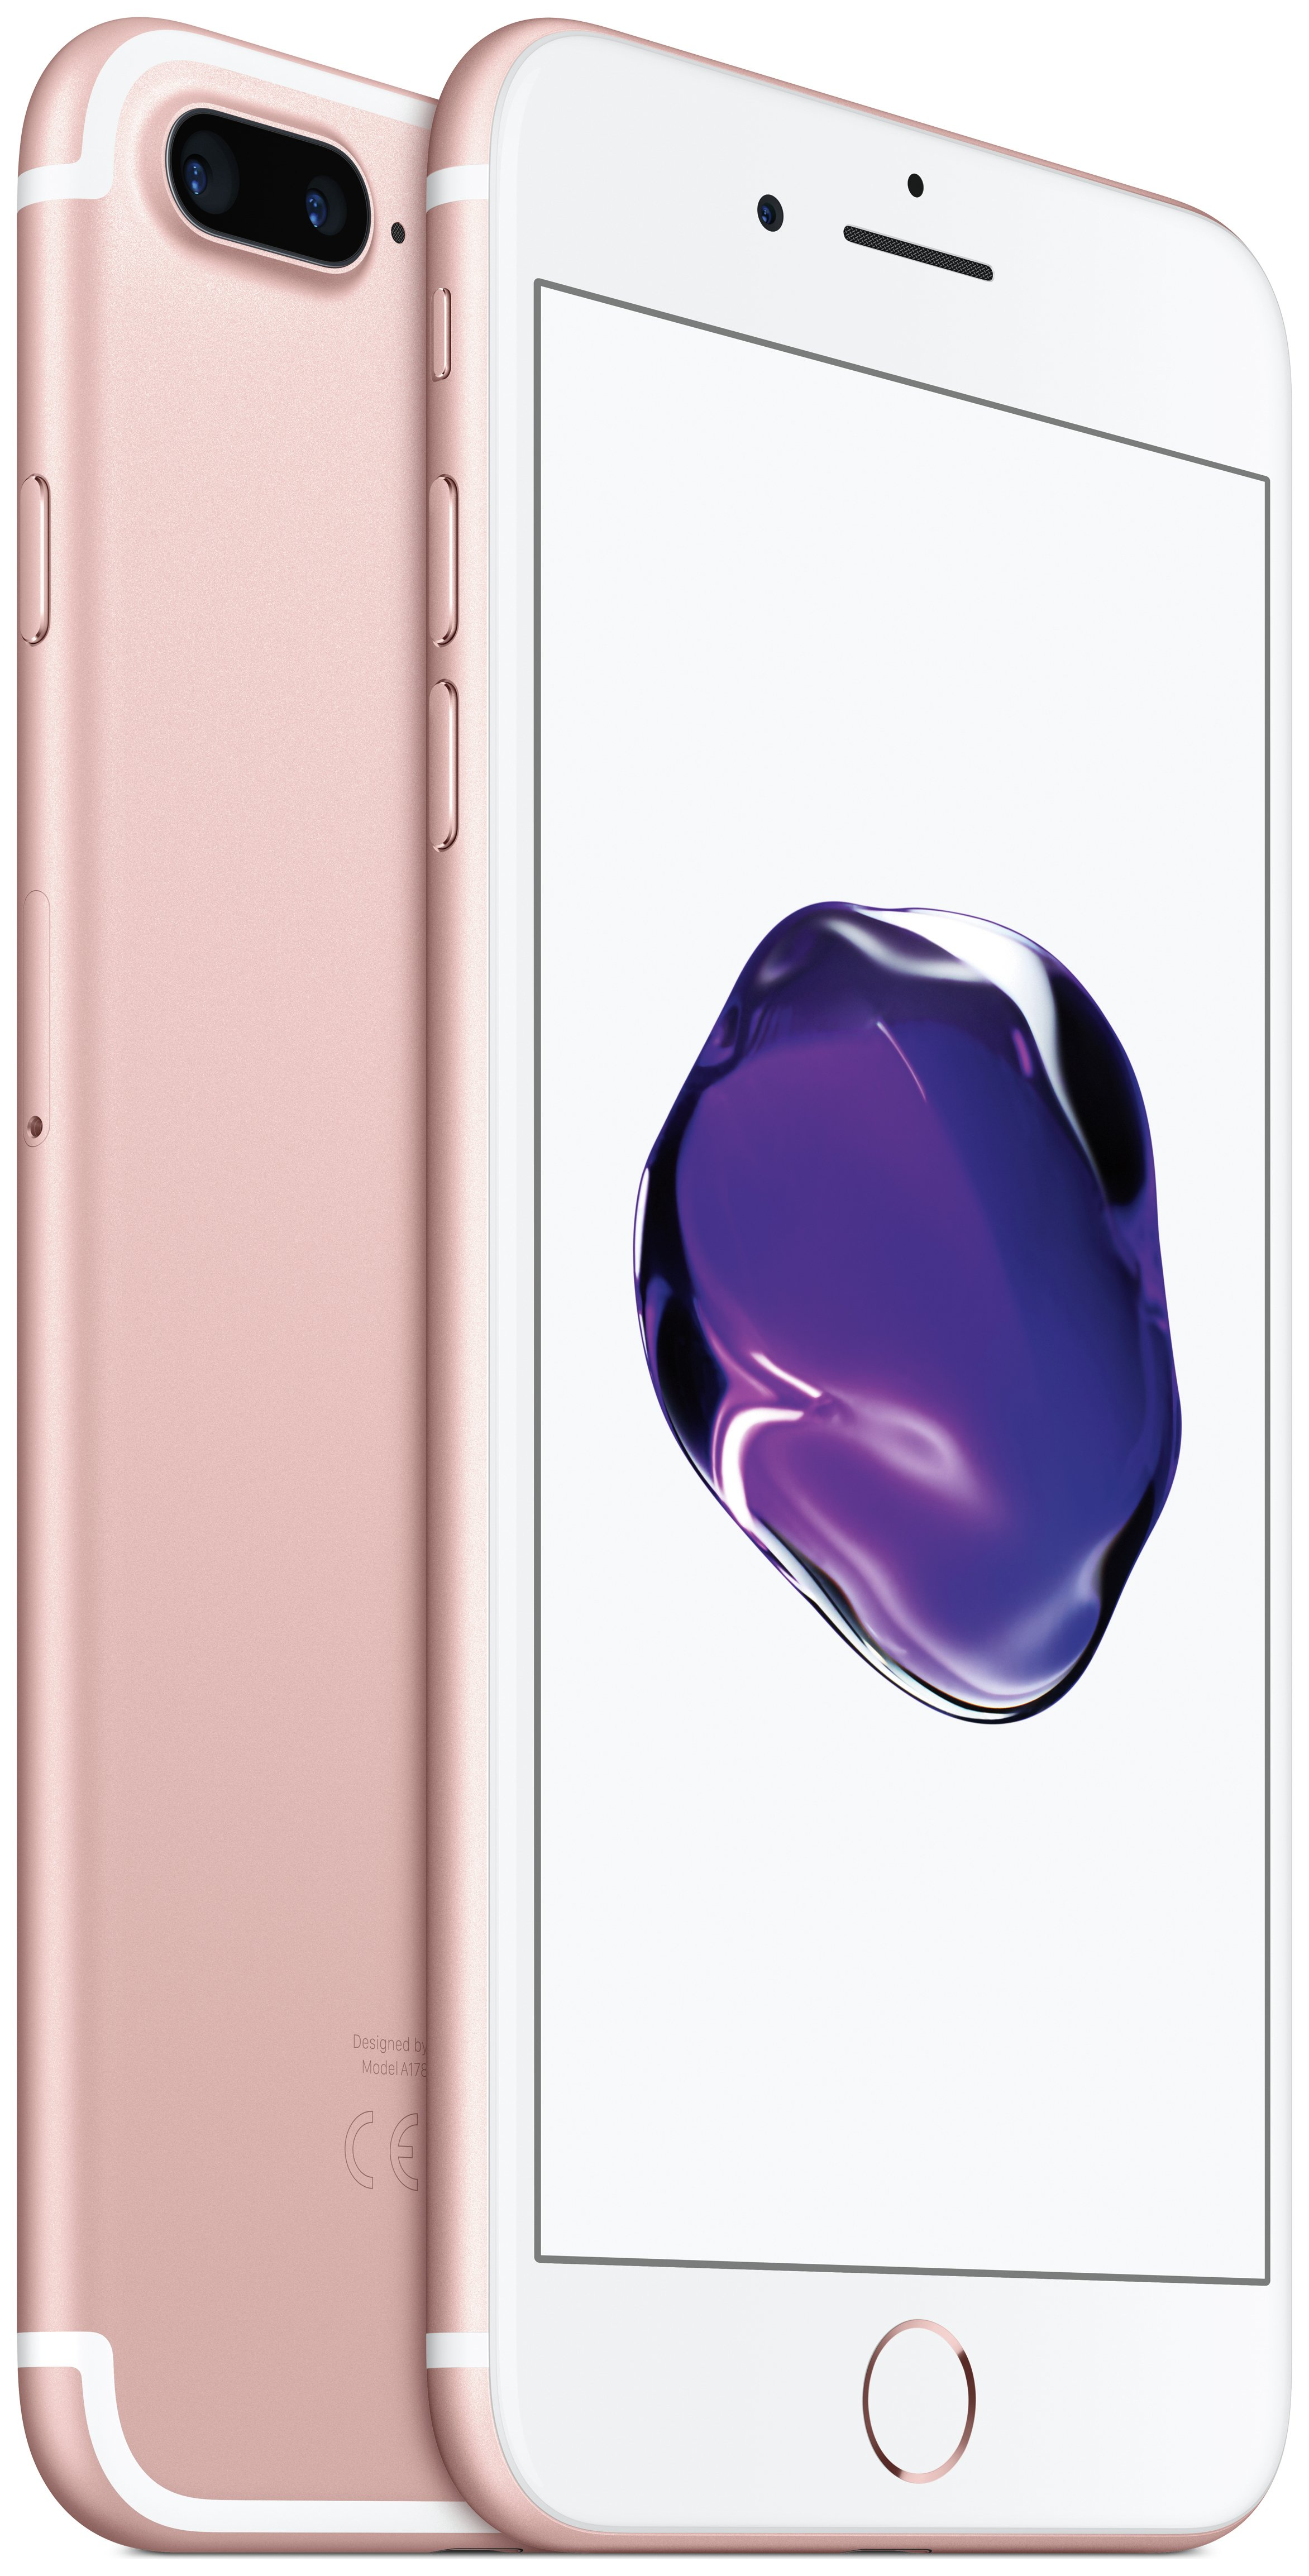 iphone 7 plus rose gold. sim free iphone 7 plus 32gb mobile phone - rose gold iphone i